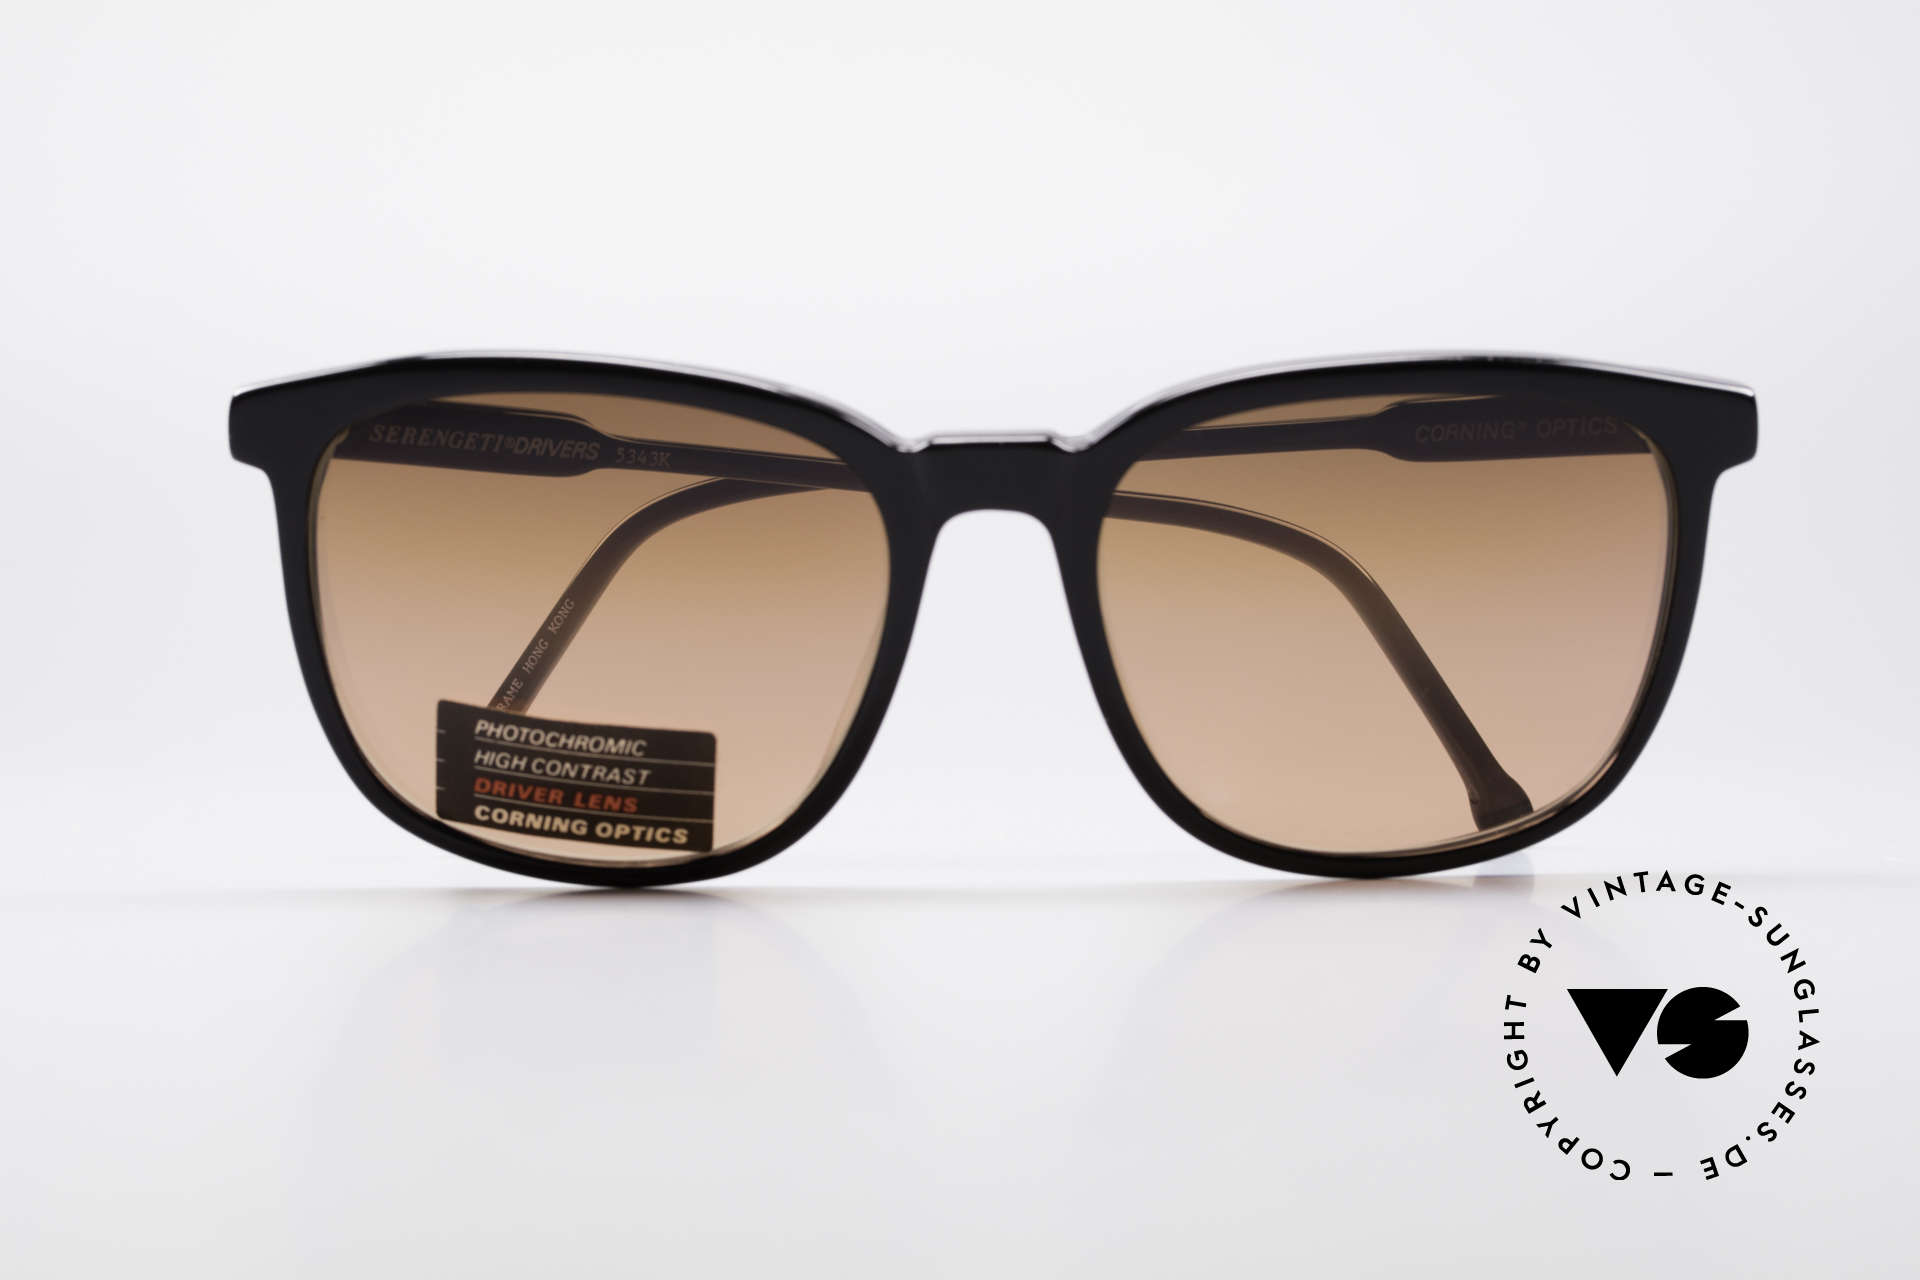 Serengeti Drivers 5343 Drivers Sunglasses, never worn (like all our rare vintage sports sunglasses), Made for Men and Women